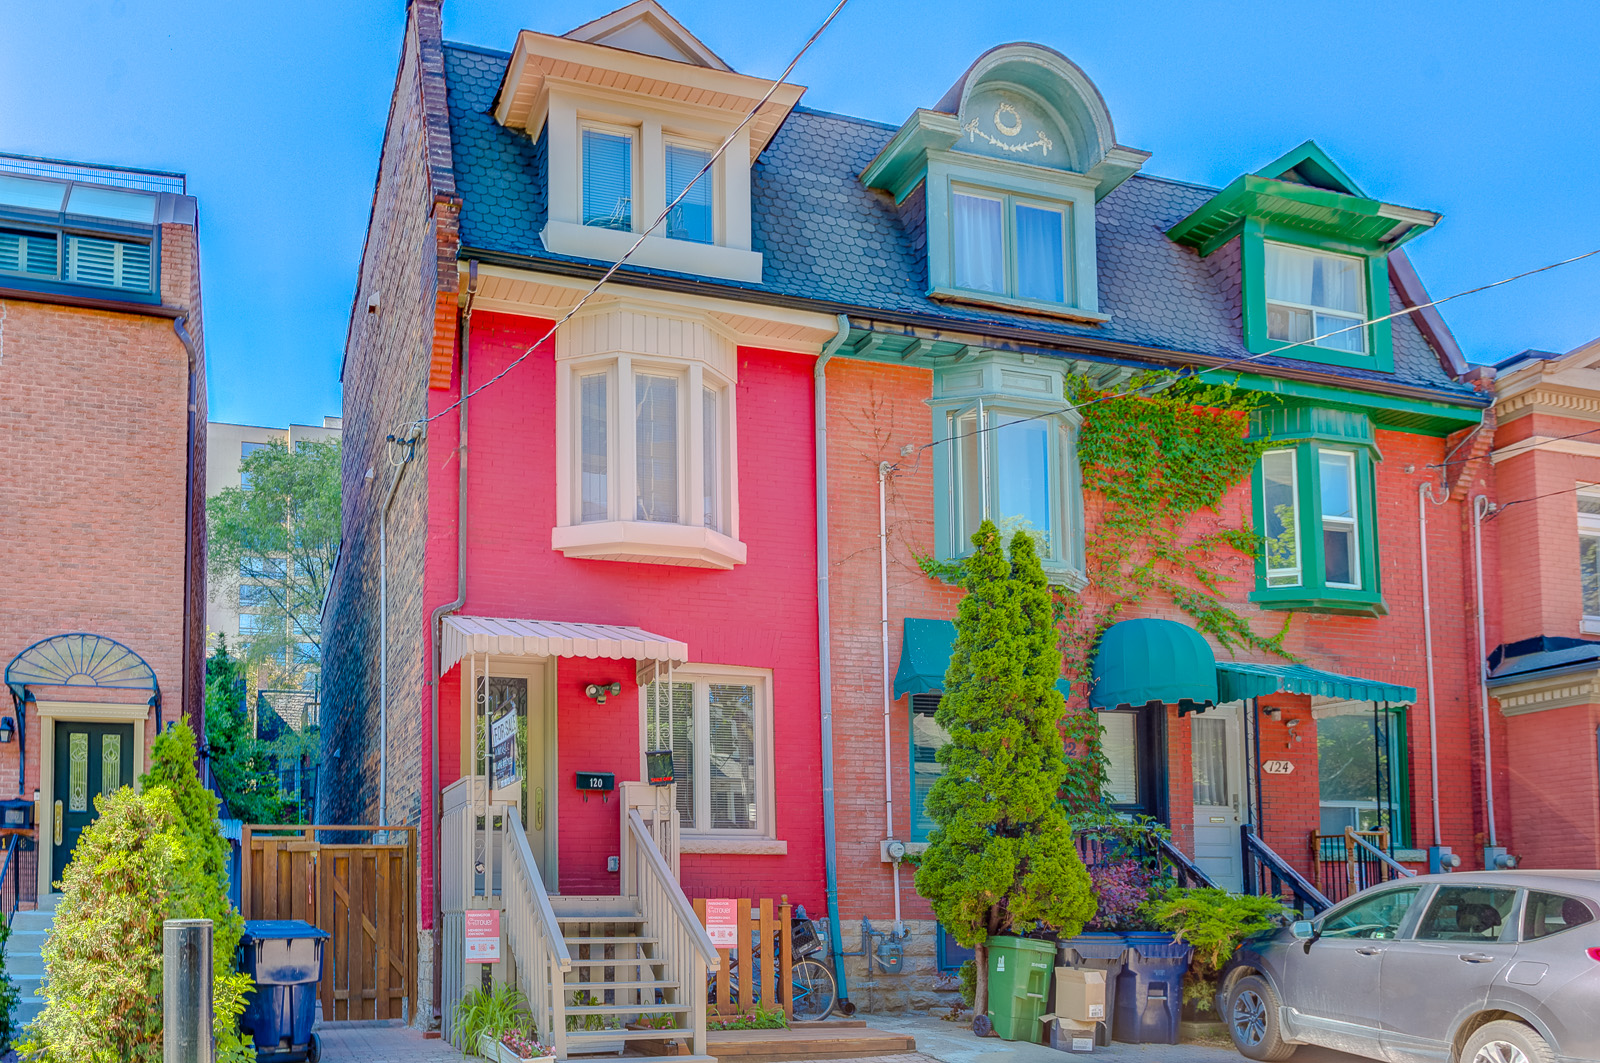 Colourful 3-storey Victorian house for sale showing popularity of houses in February 2021.